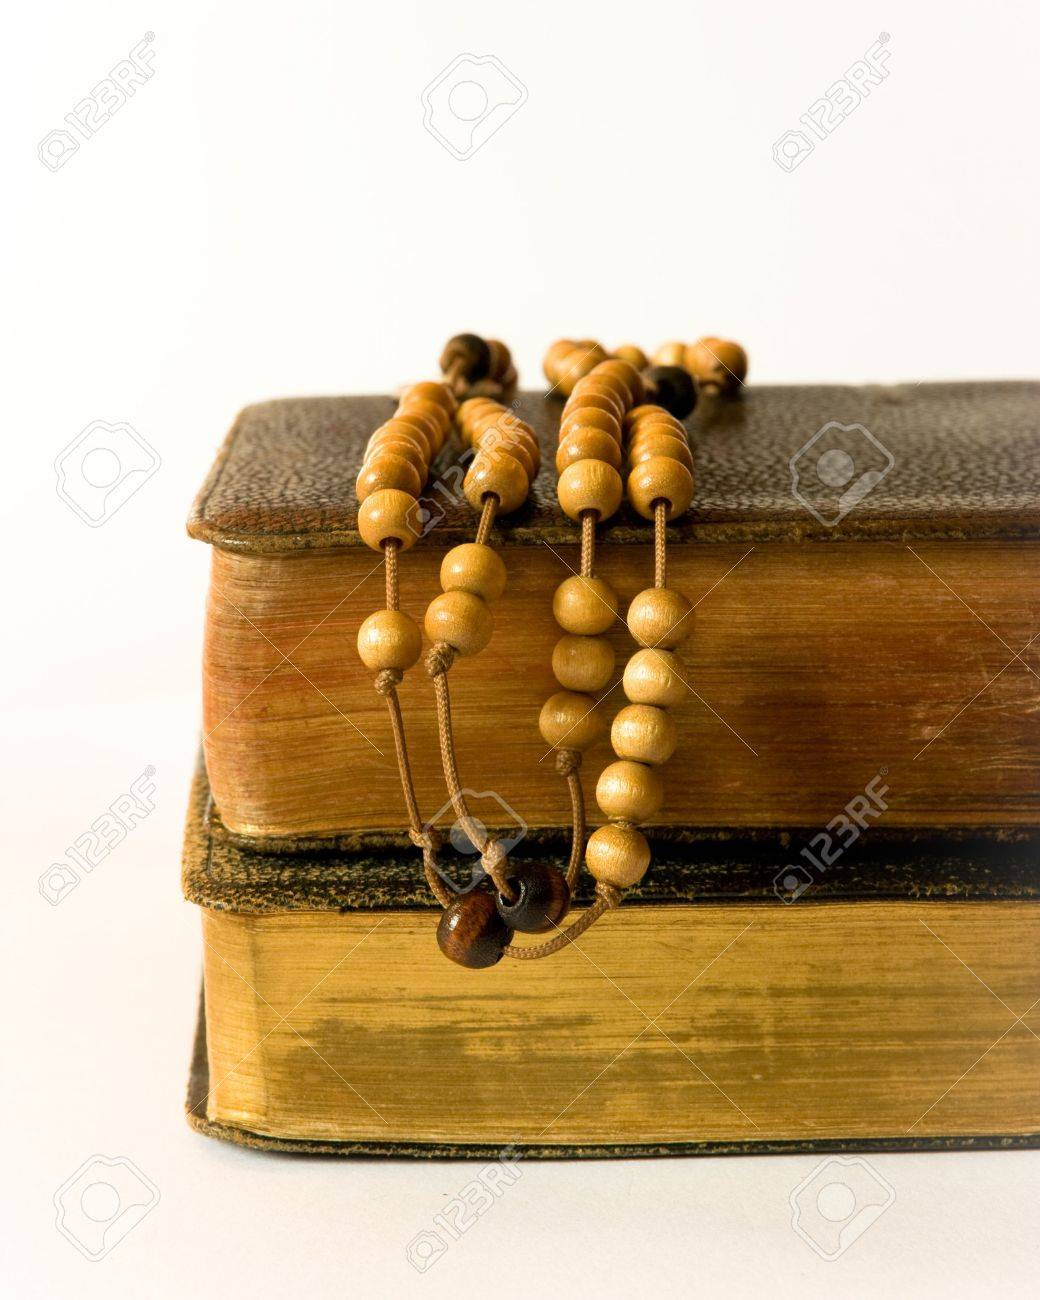 The book of Catholic Church liturgy and rosary beads - 7730336